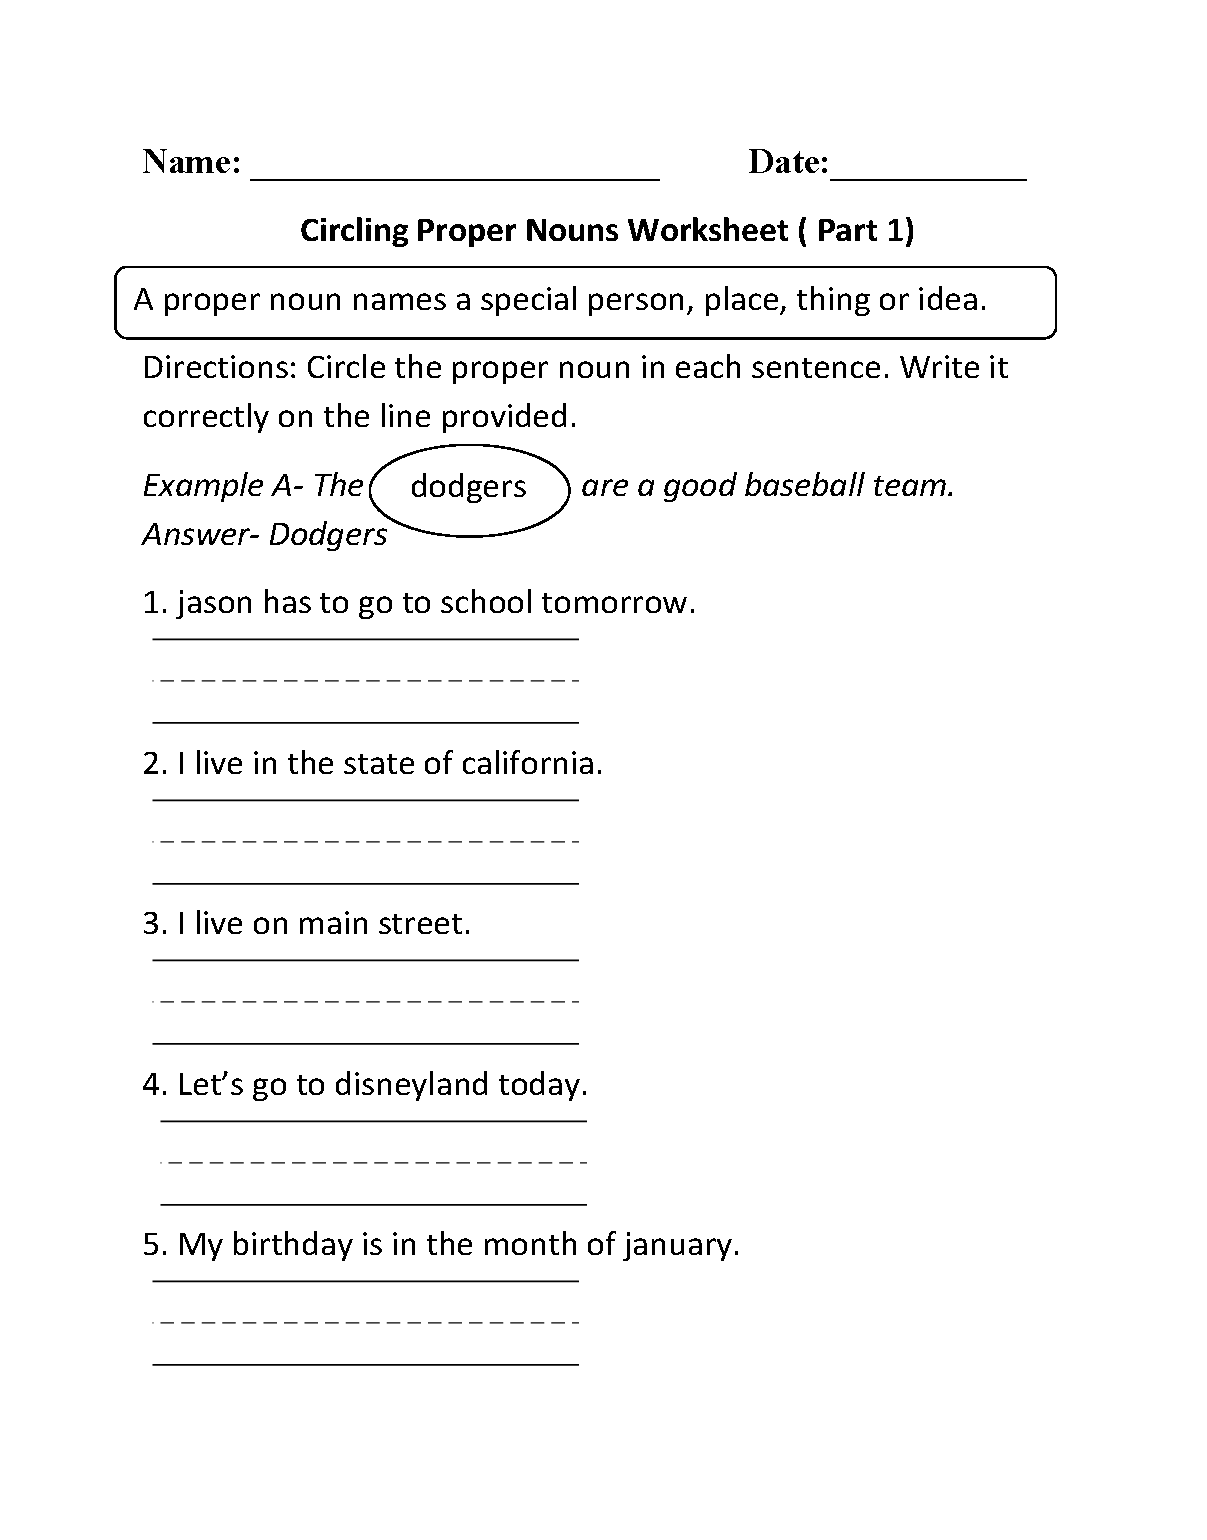 Pin On Class Ideas Worksheets